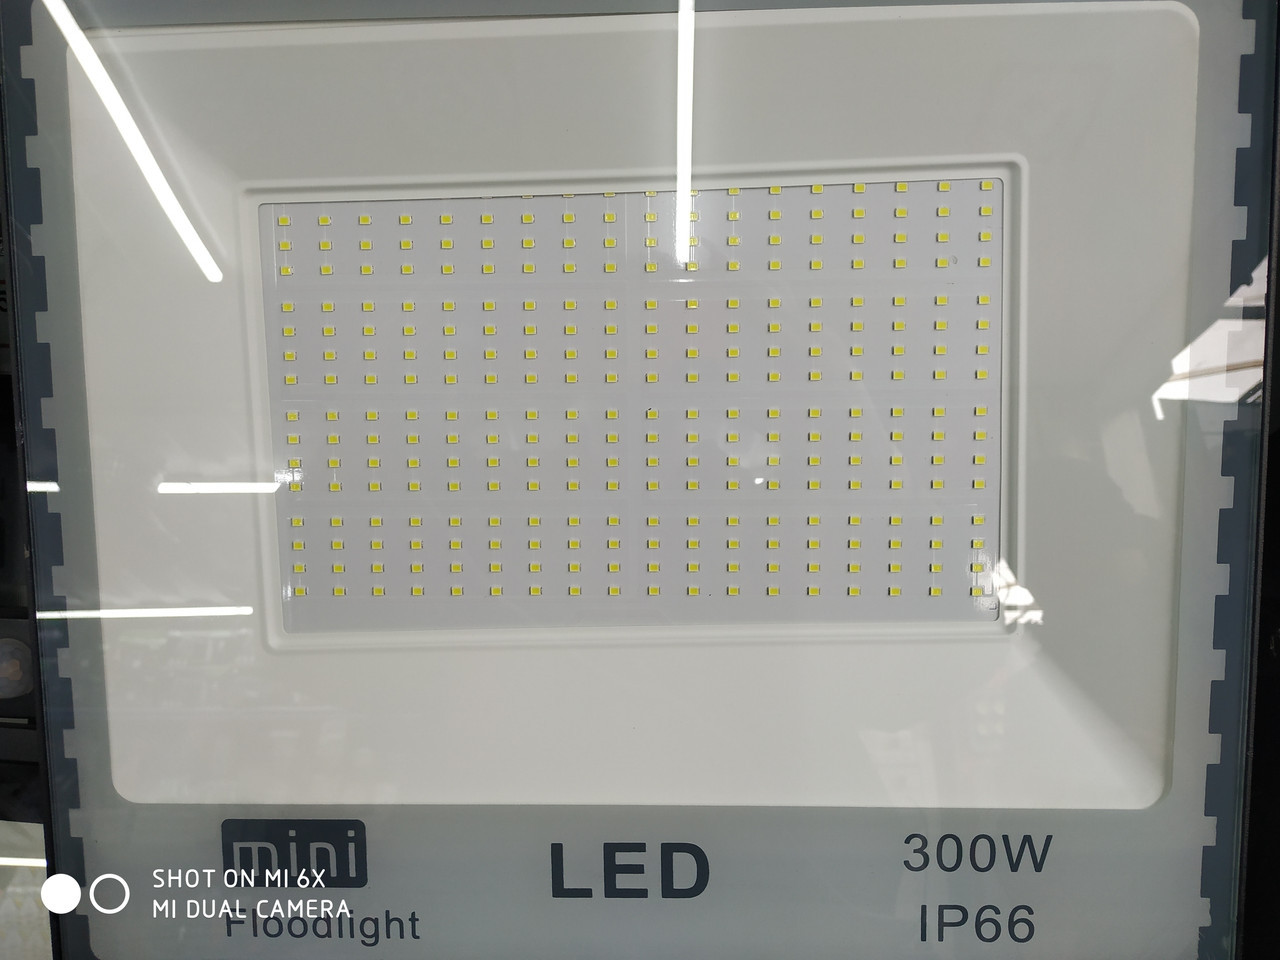 Прожектор LED mini Floodiight  300W    IP66